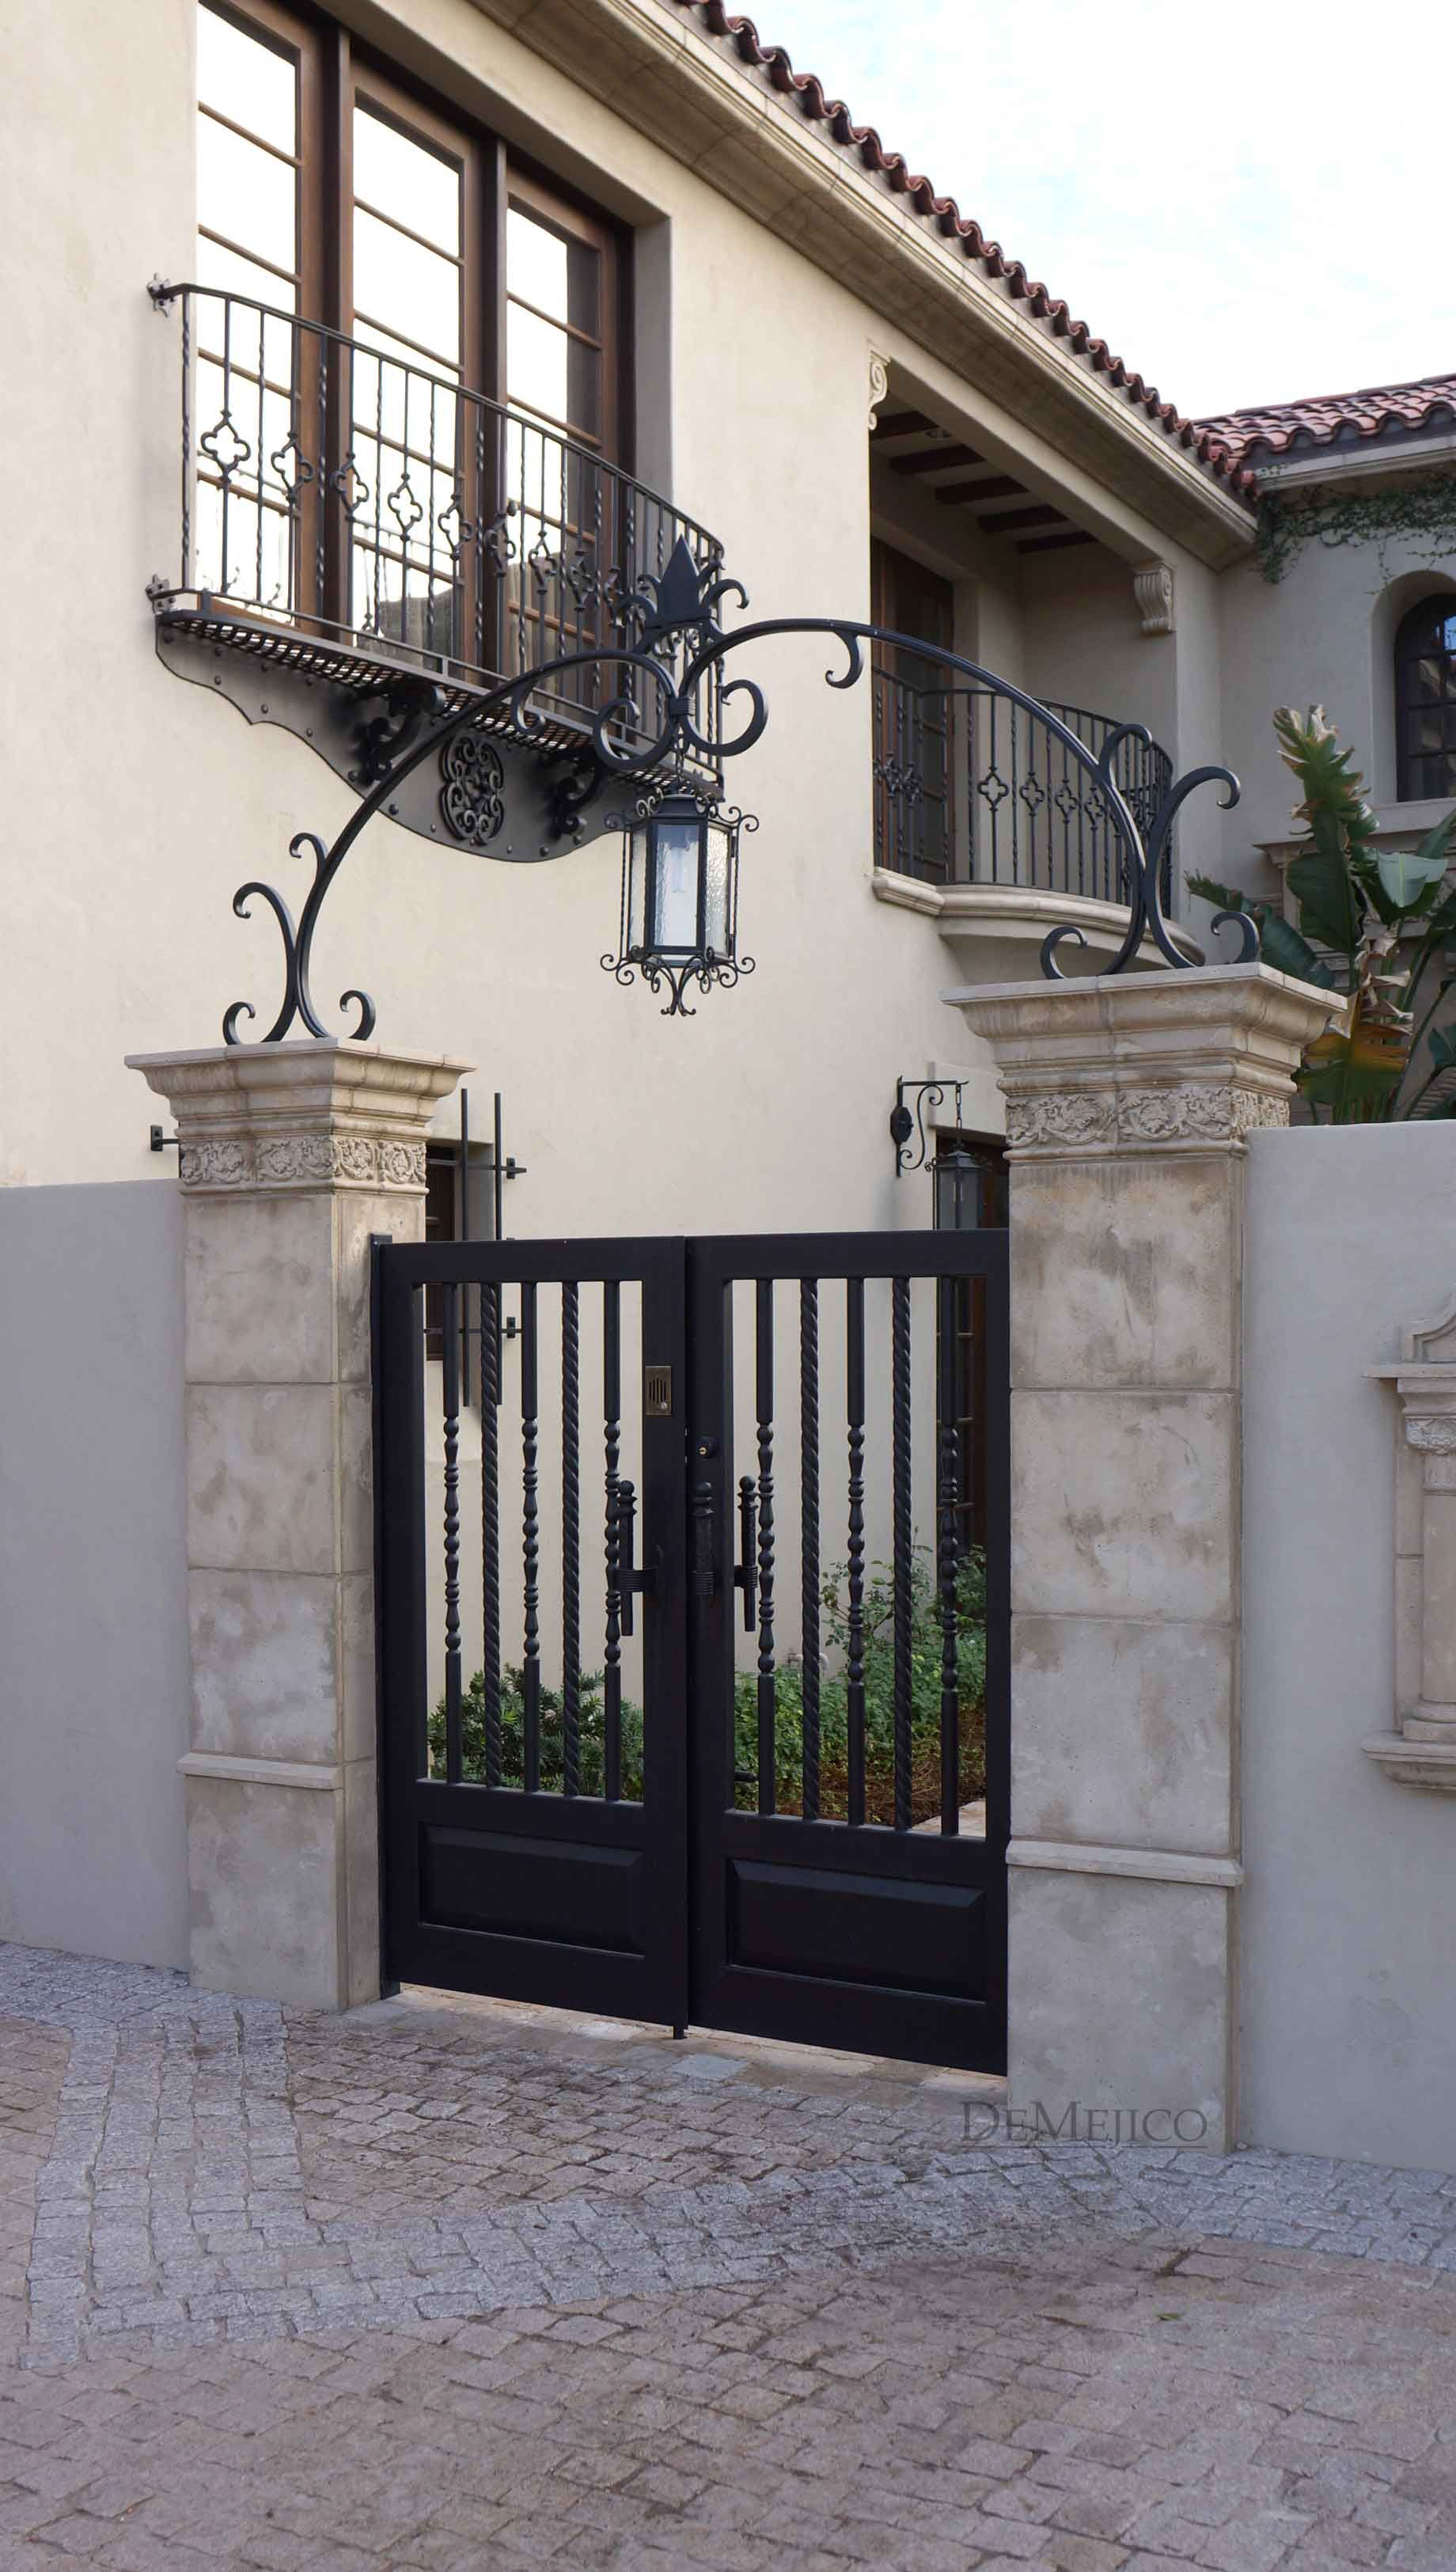 Wrought Iron Gates: A Classic And Custom Wrought Iron Entry Gate, Complimented